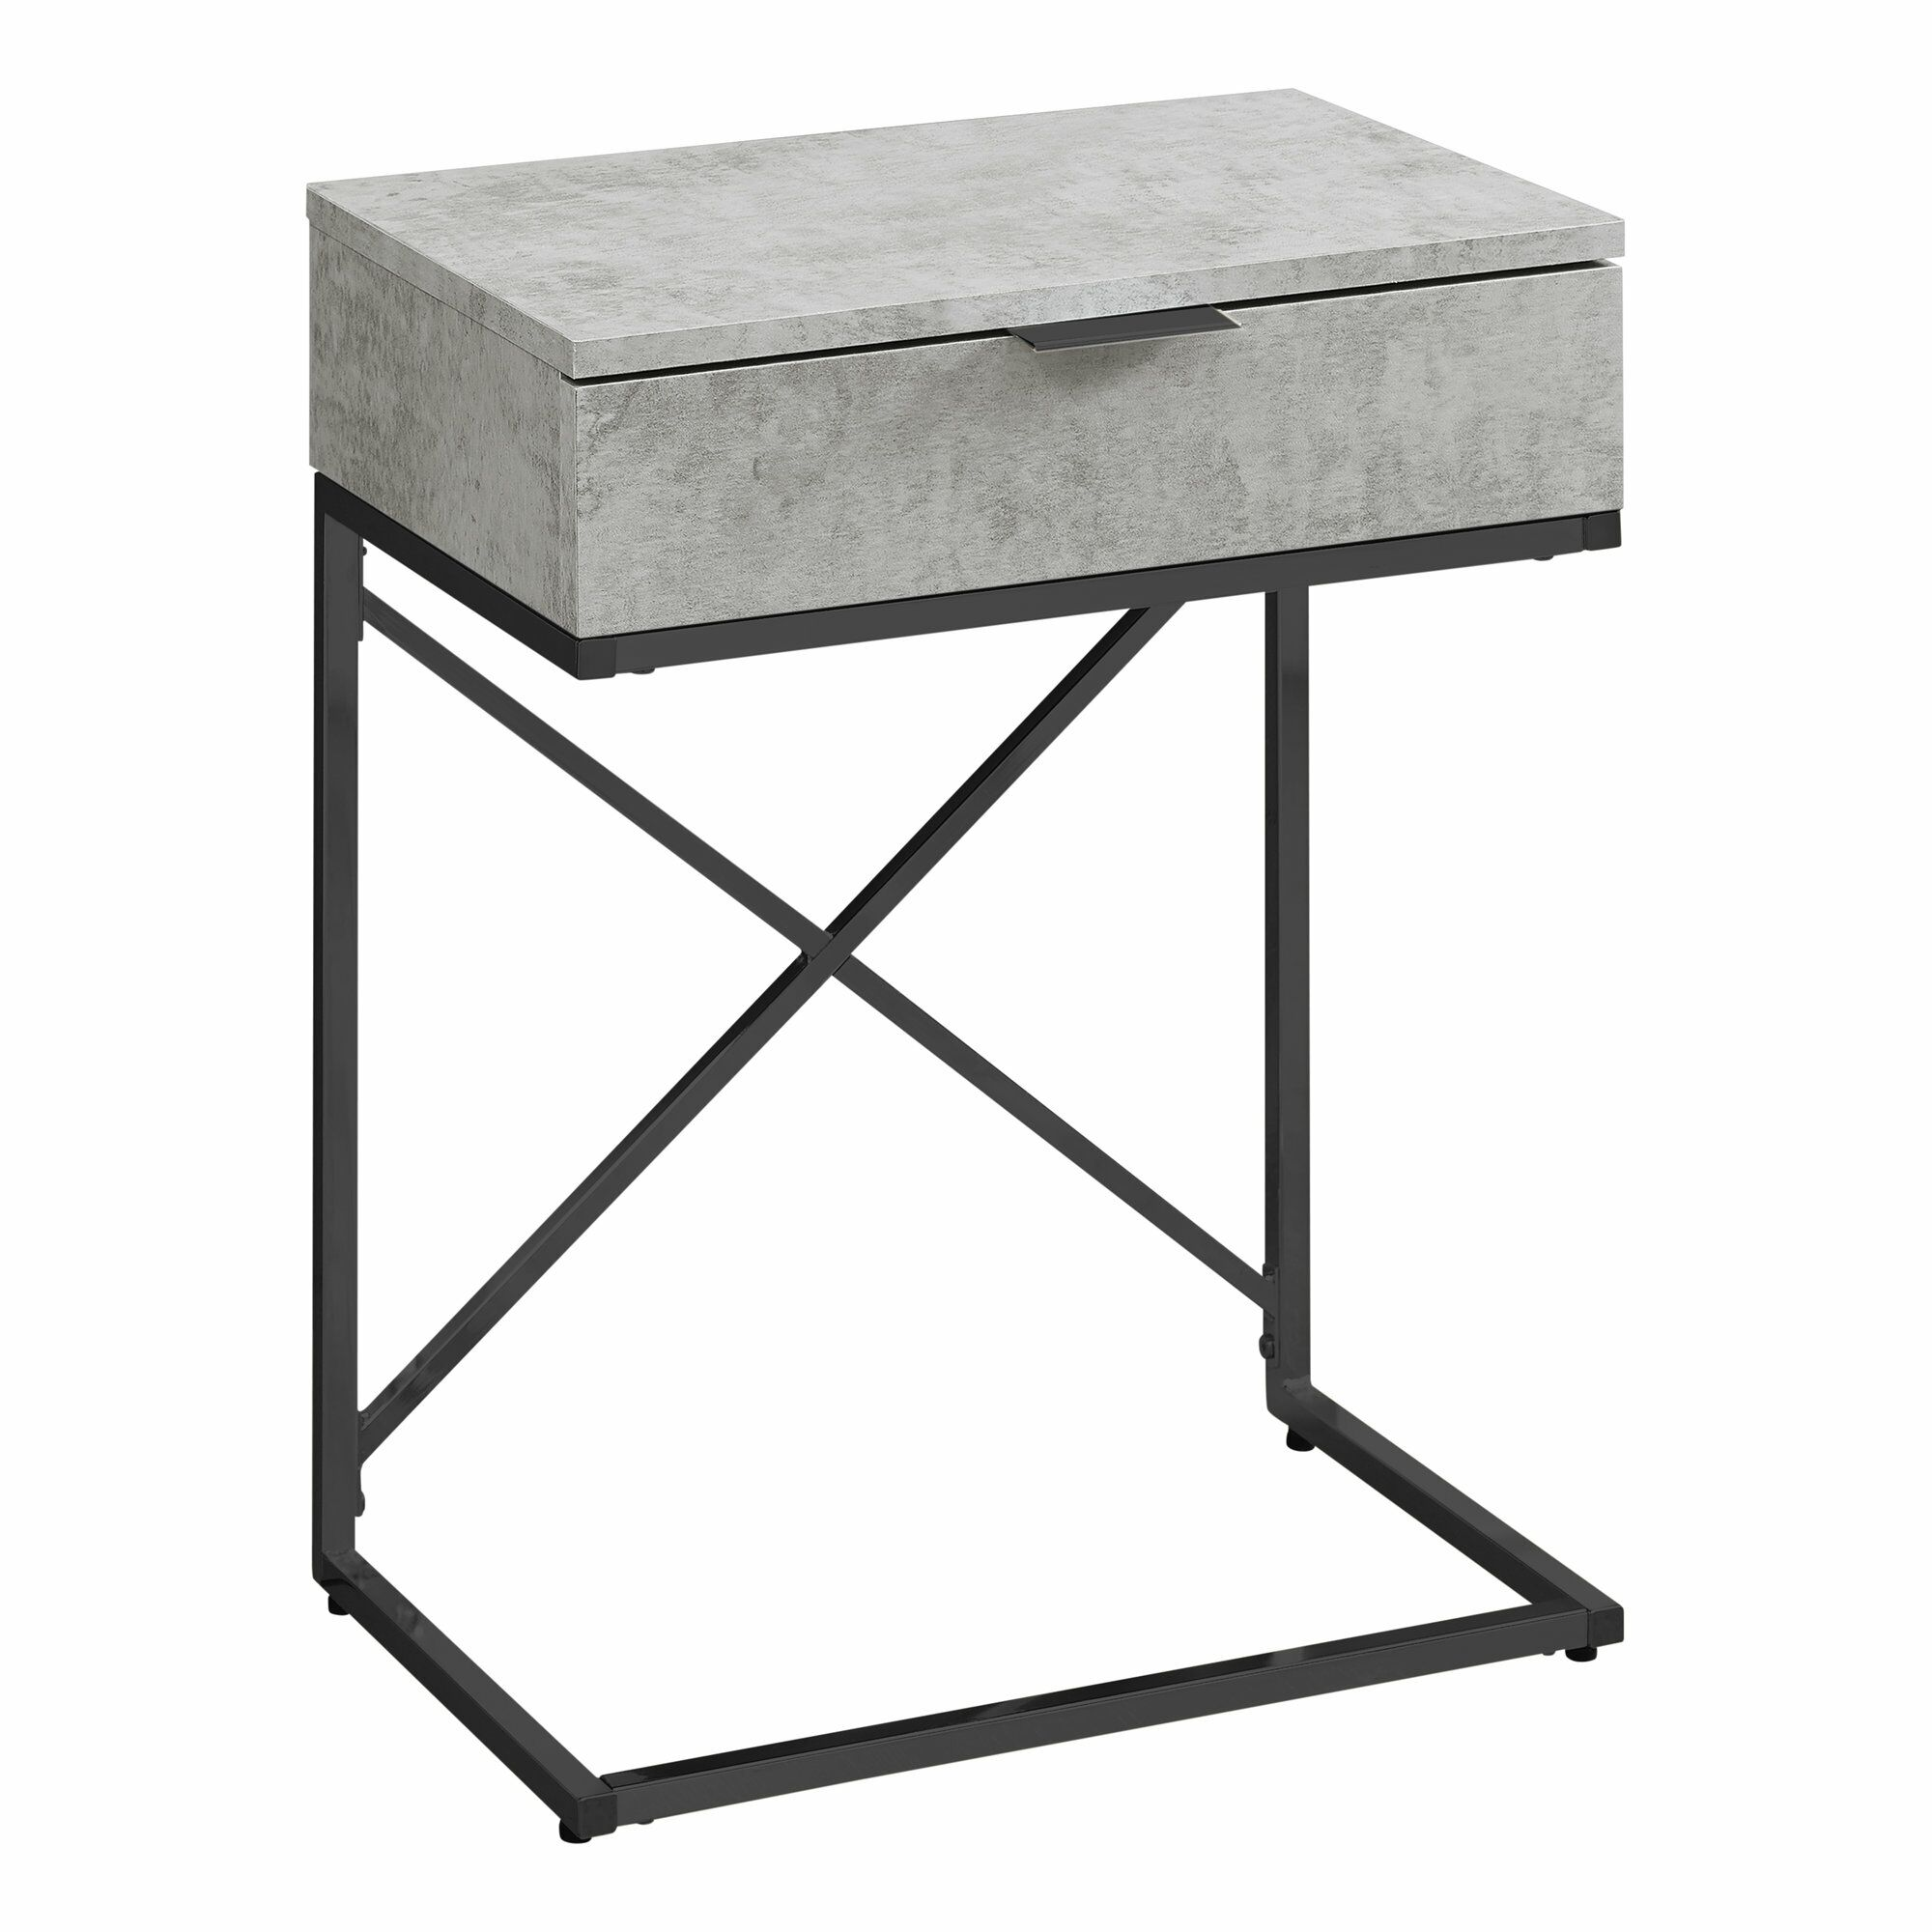 Hemlock End Table with Storage Table Base Color: Black, Table Top Color: Gray